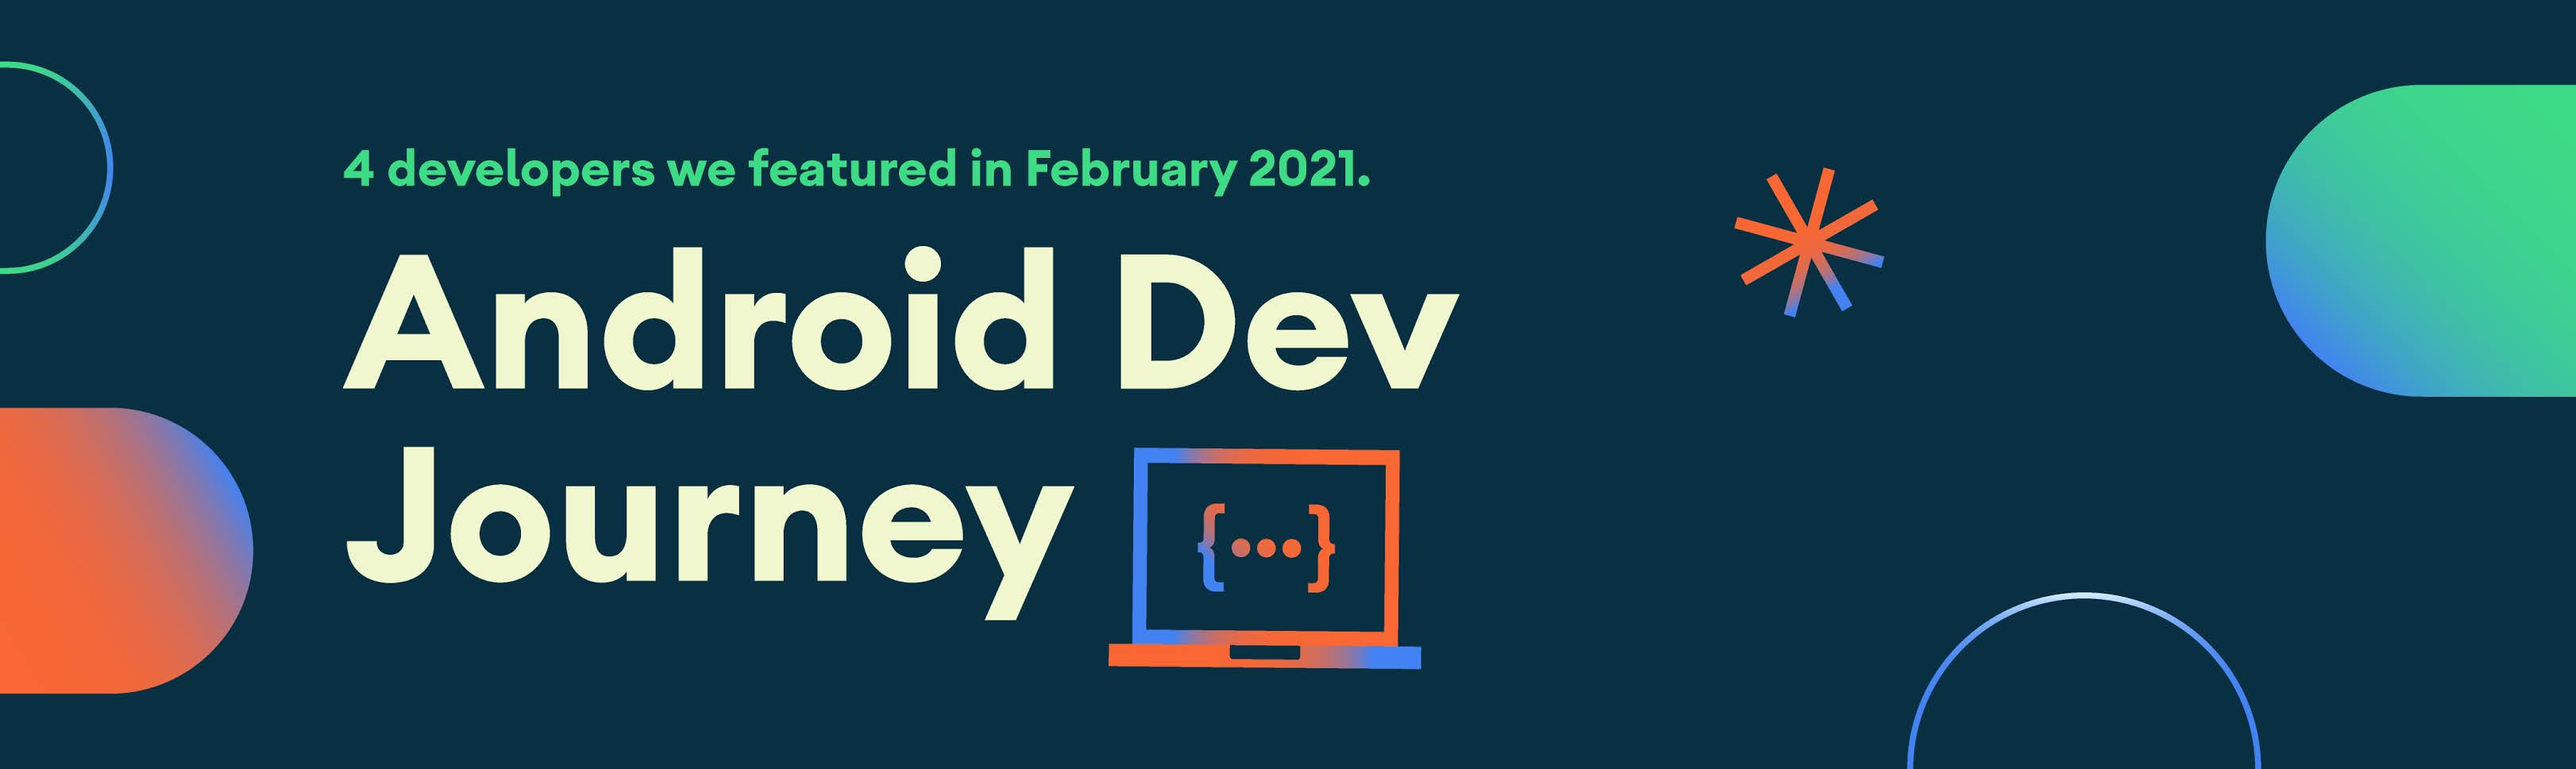 Android Dev Journey February Header